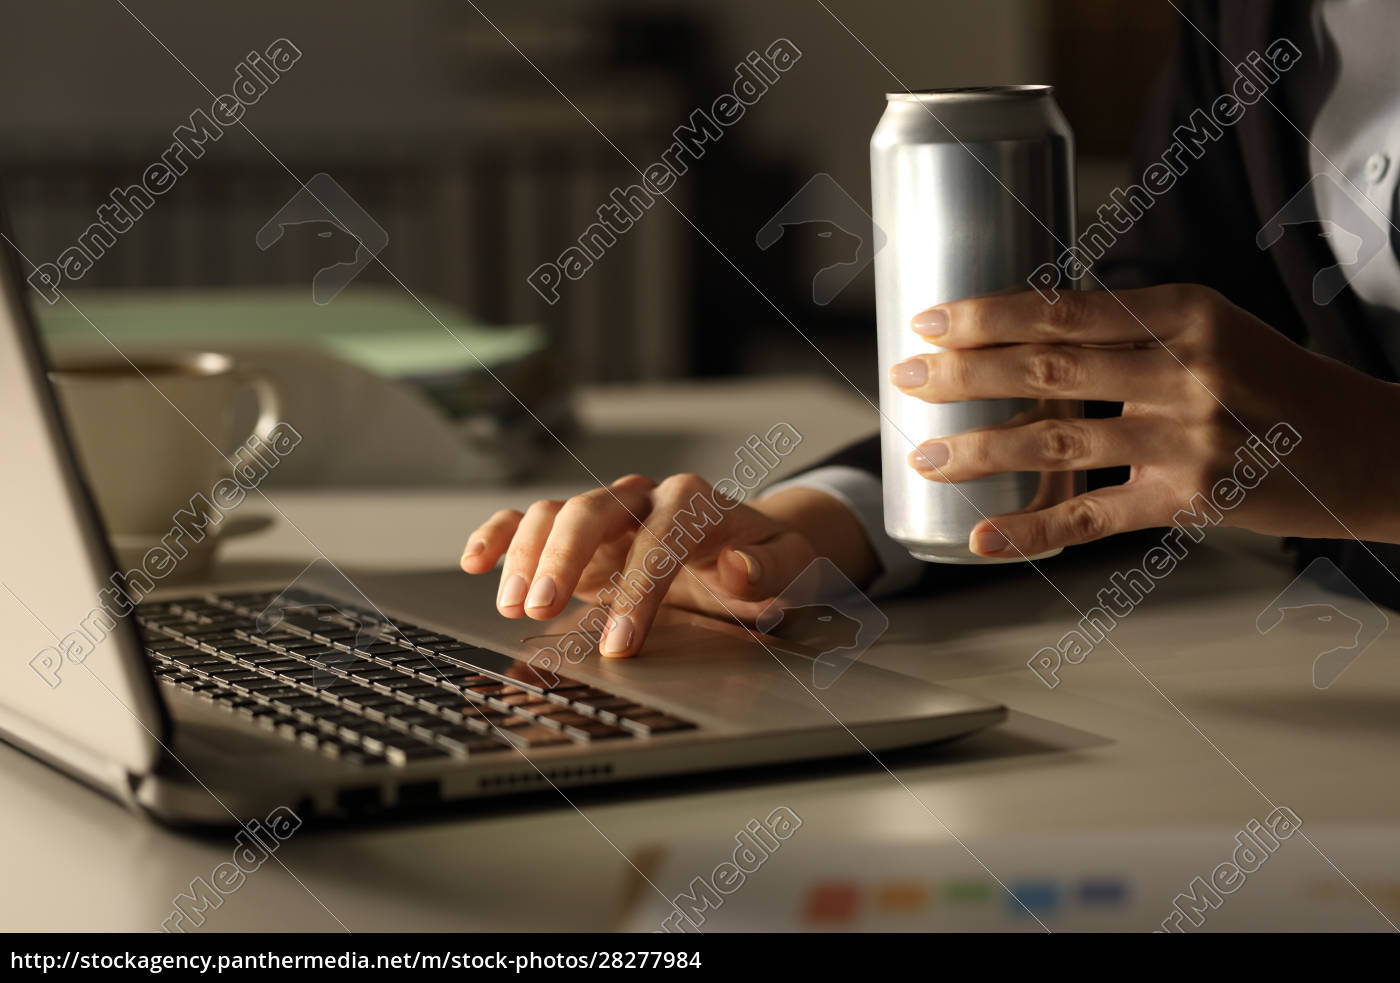 executive, hands, with, laptop, holding, energy - 28277984